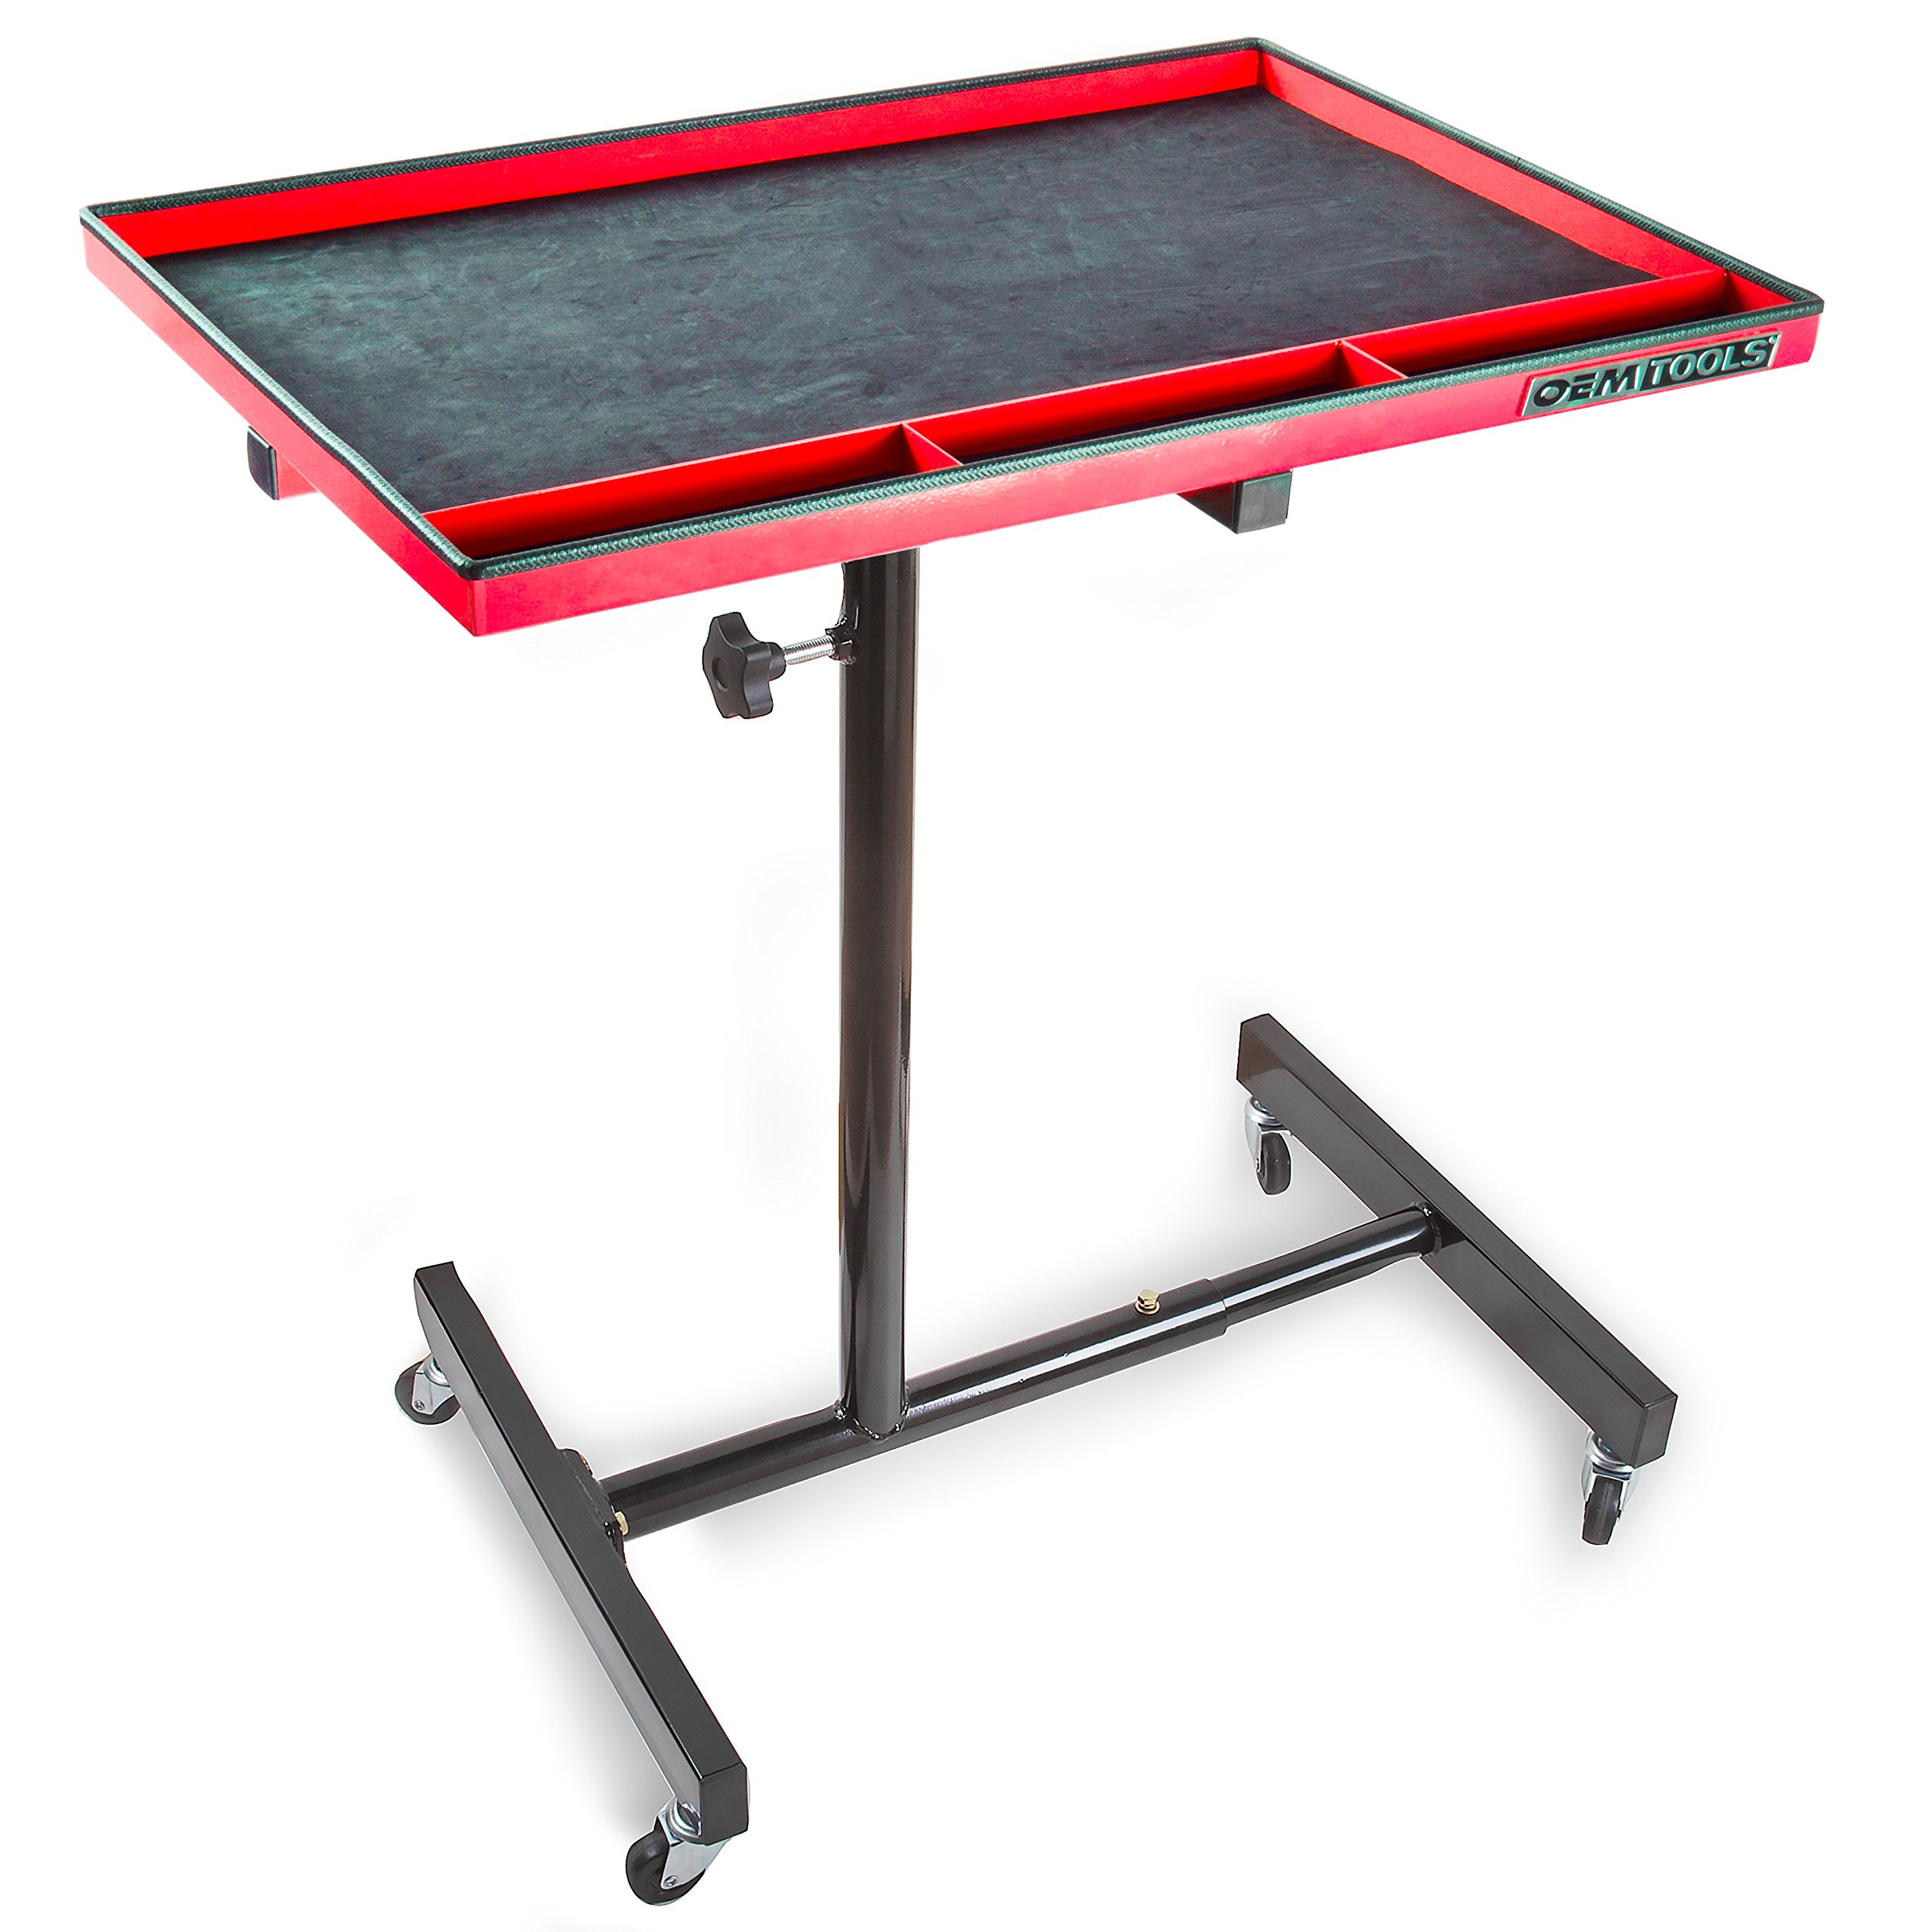 OEMTOOLS 24935 OEMTOOLS 24935 Red and Black 29'' Portable Tear Down Tray